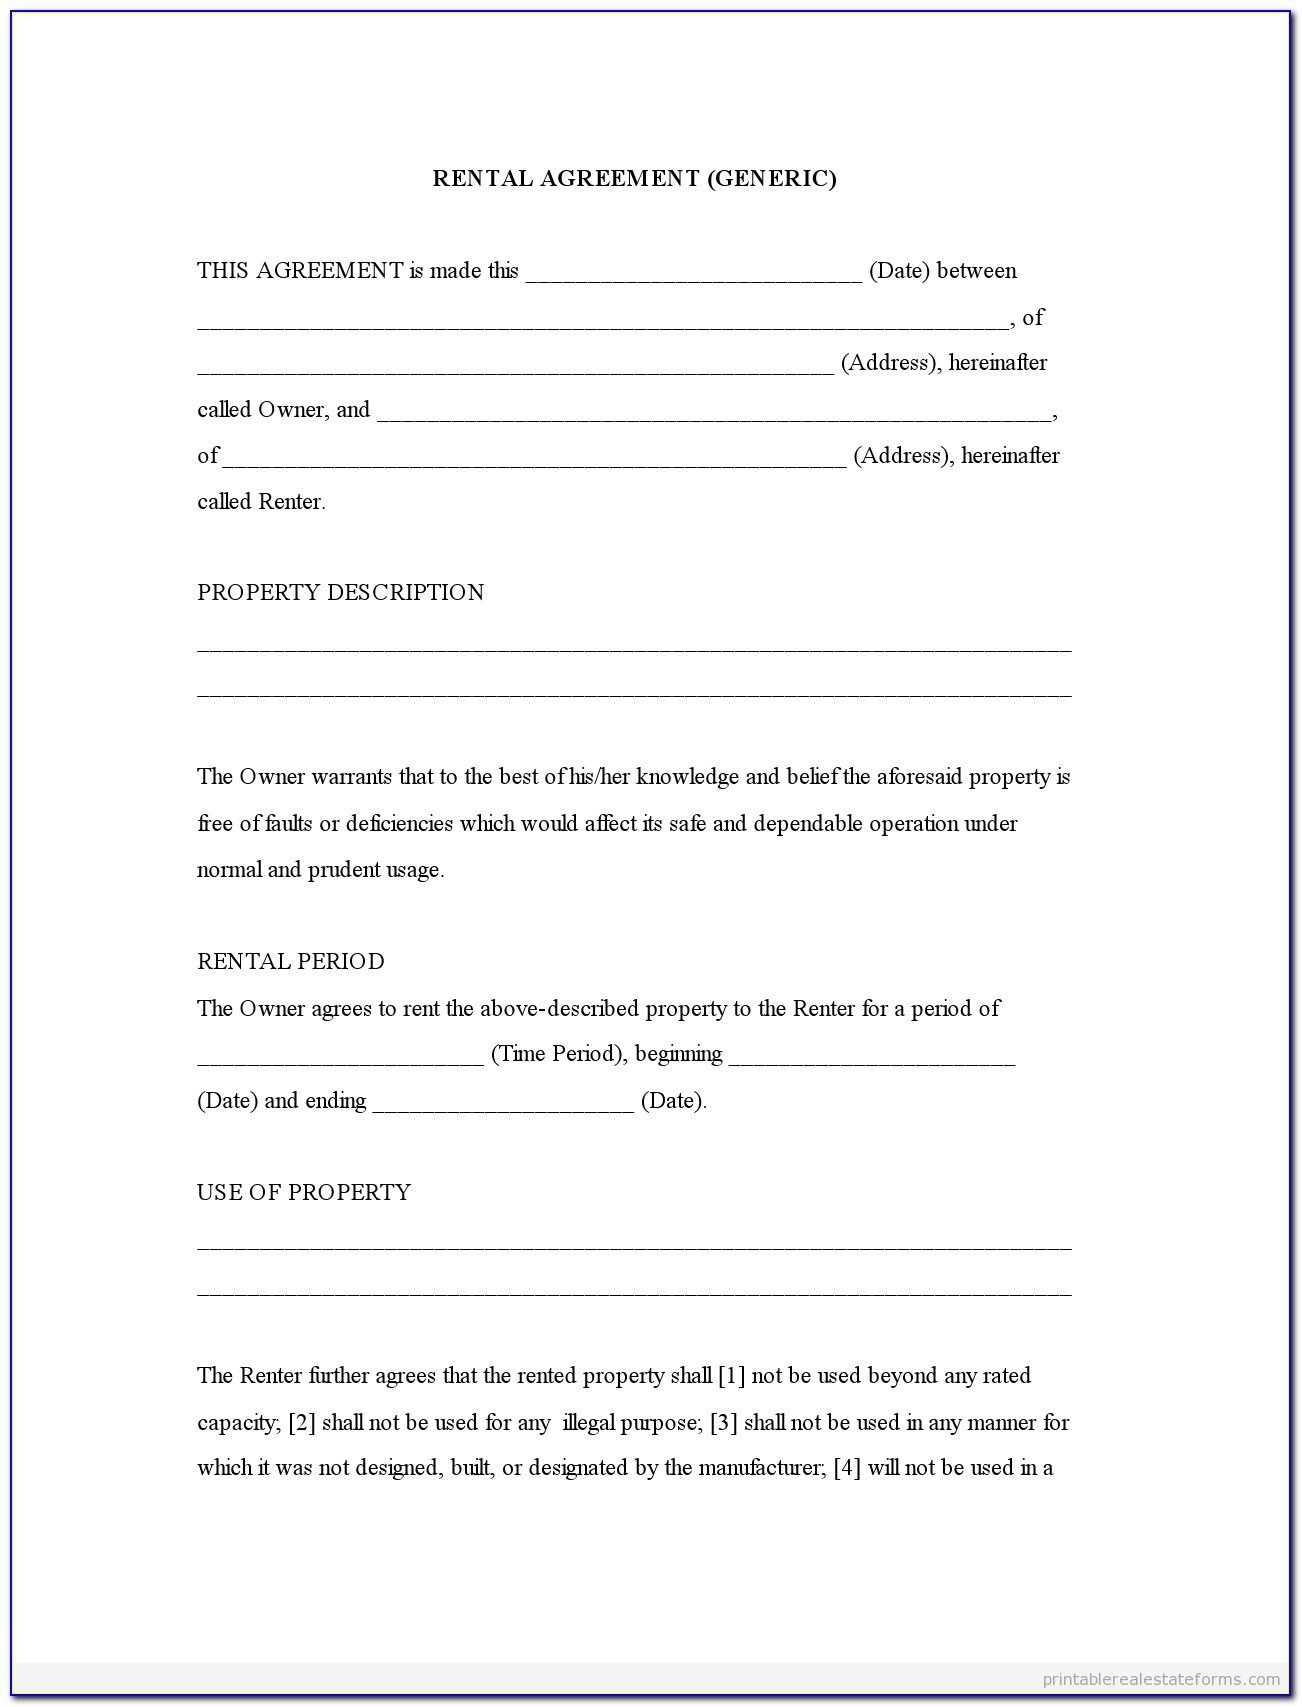 Free Printable Rental Agreement Forms California